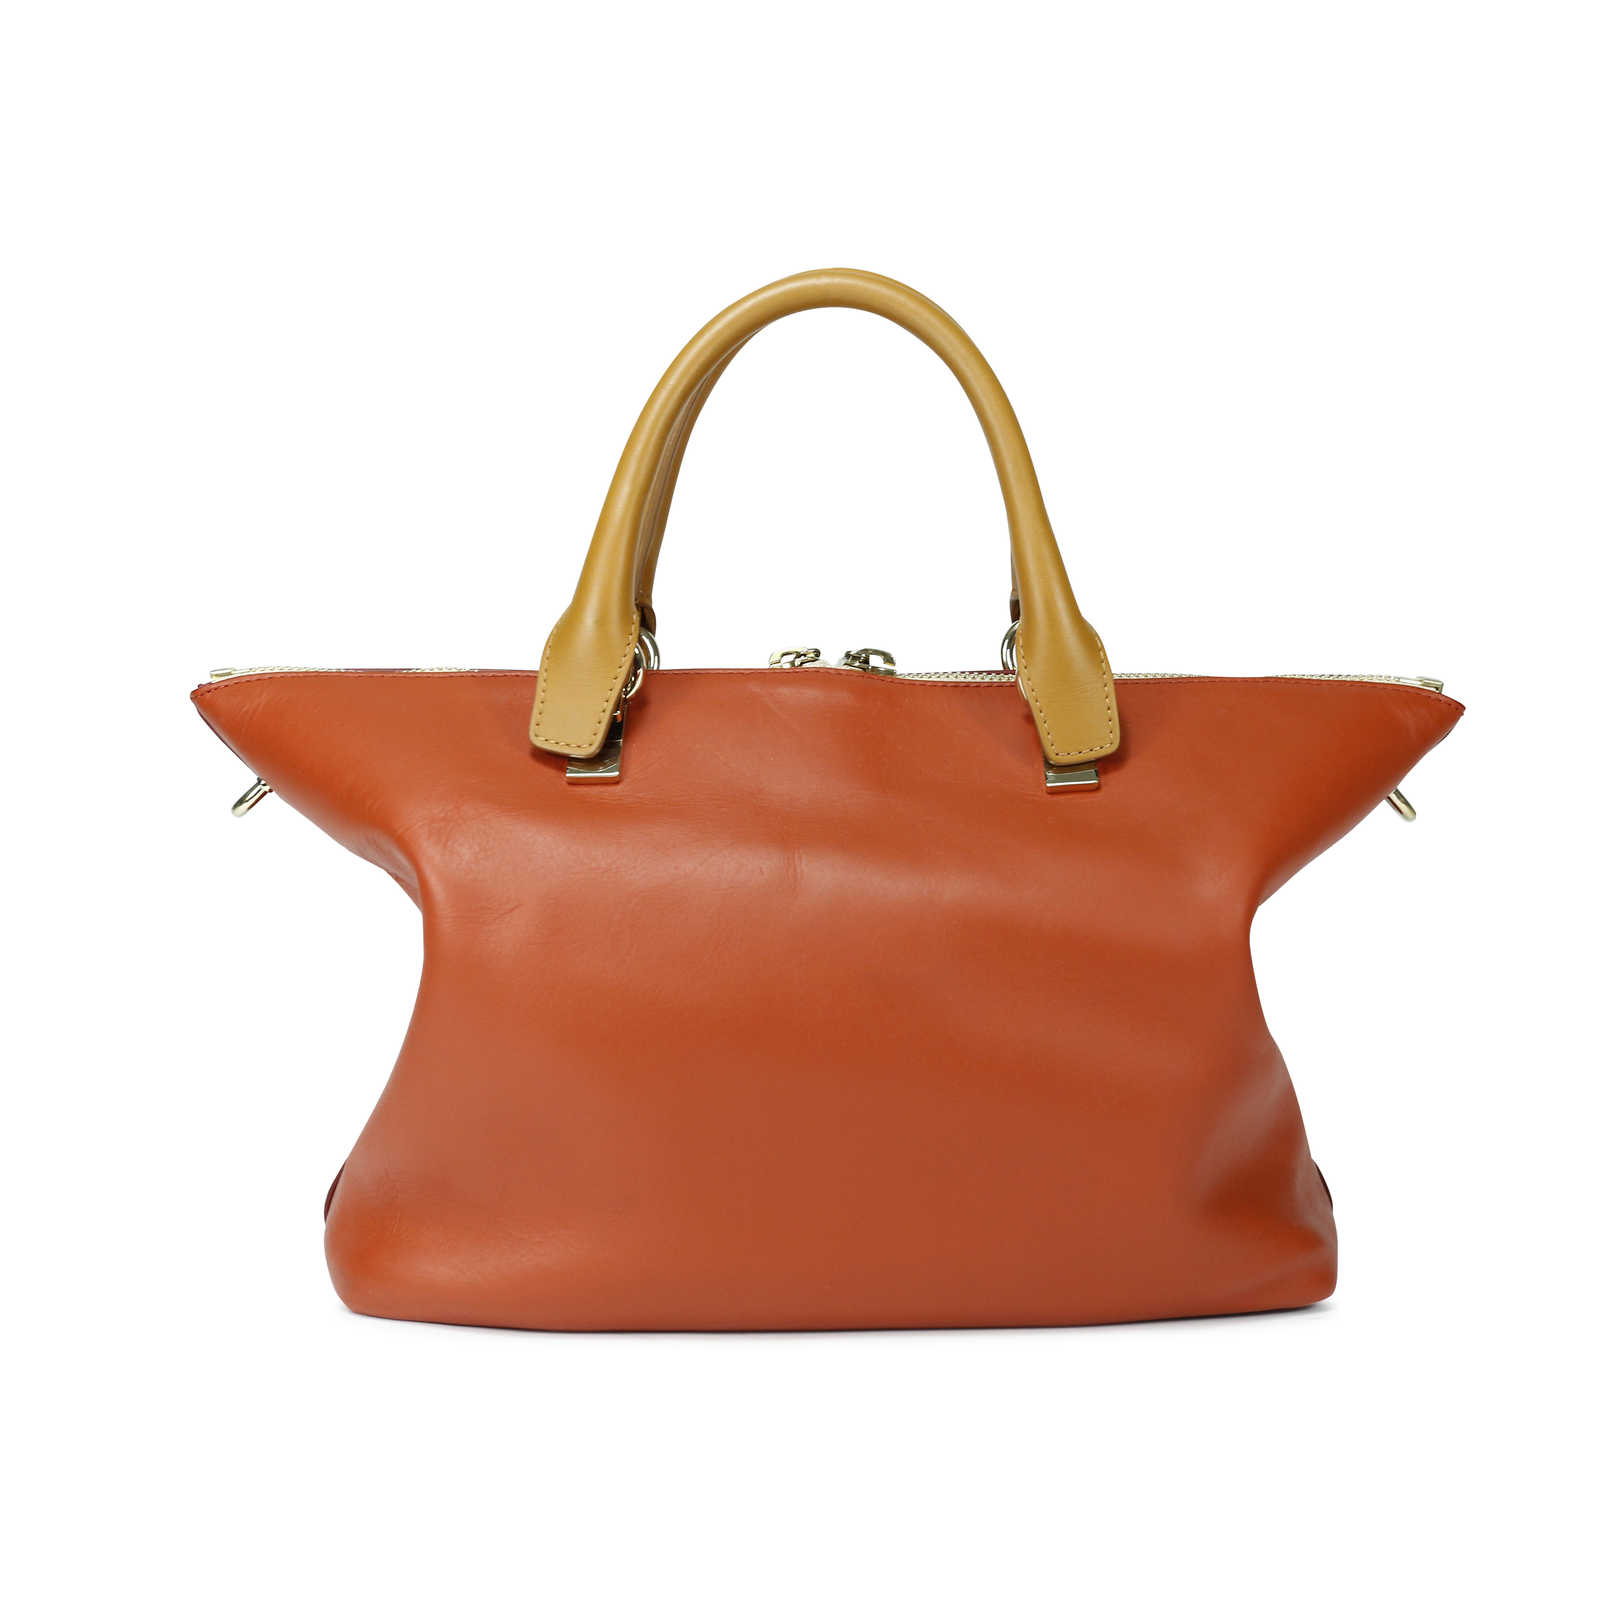 Authentic Pre Owned Chloé Baylee Medium Bag Pss 143 00005 Thumbnail